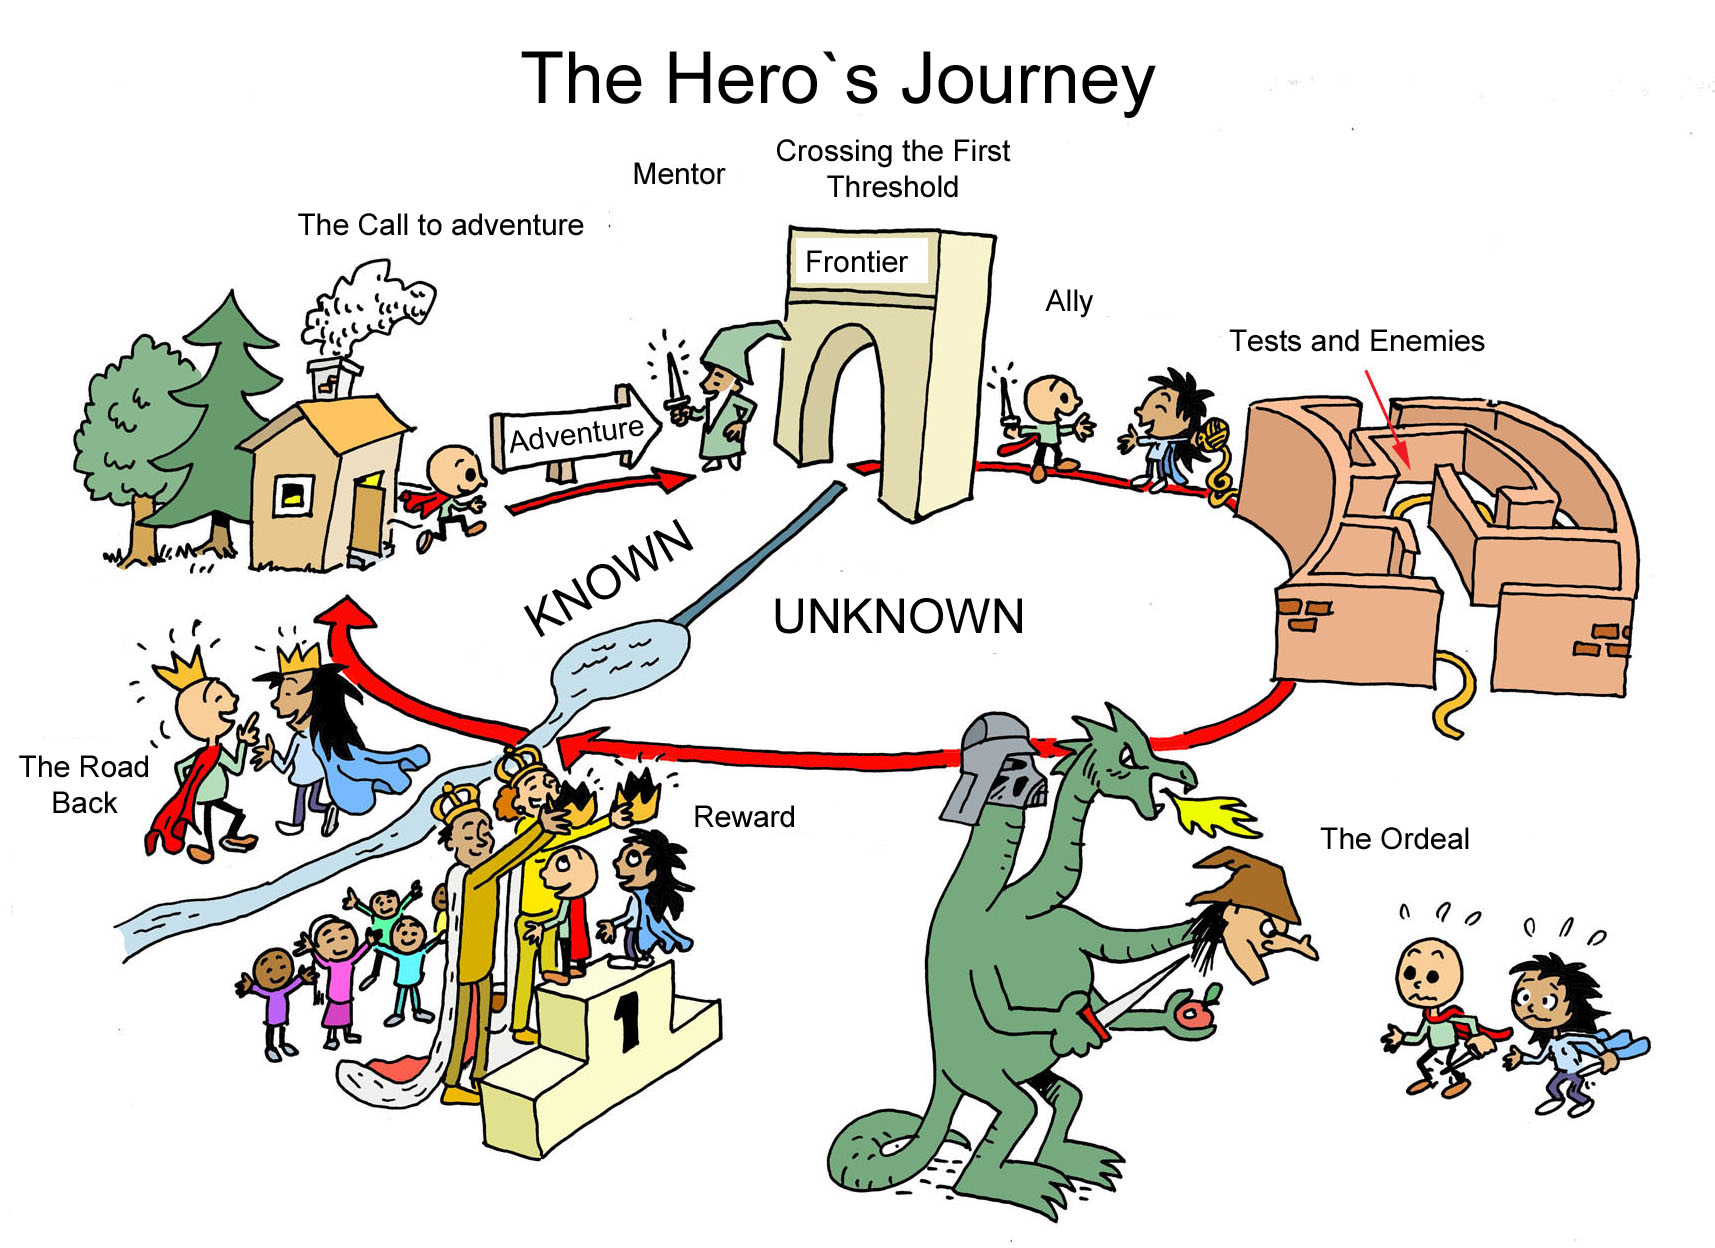 personal heros journey essay Personal journey essay taylor's journey of personal growth in the bean trees by barbara kingslover 950 words personal ethics the odyssey as a hero journey.